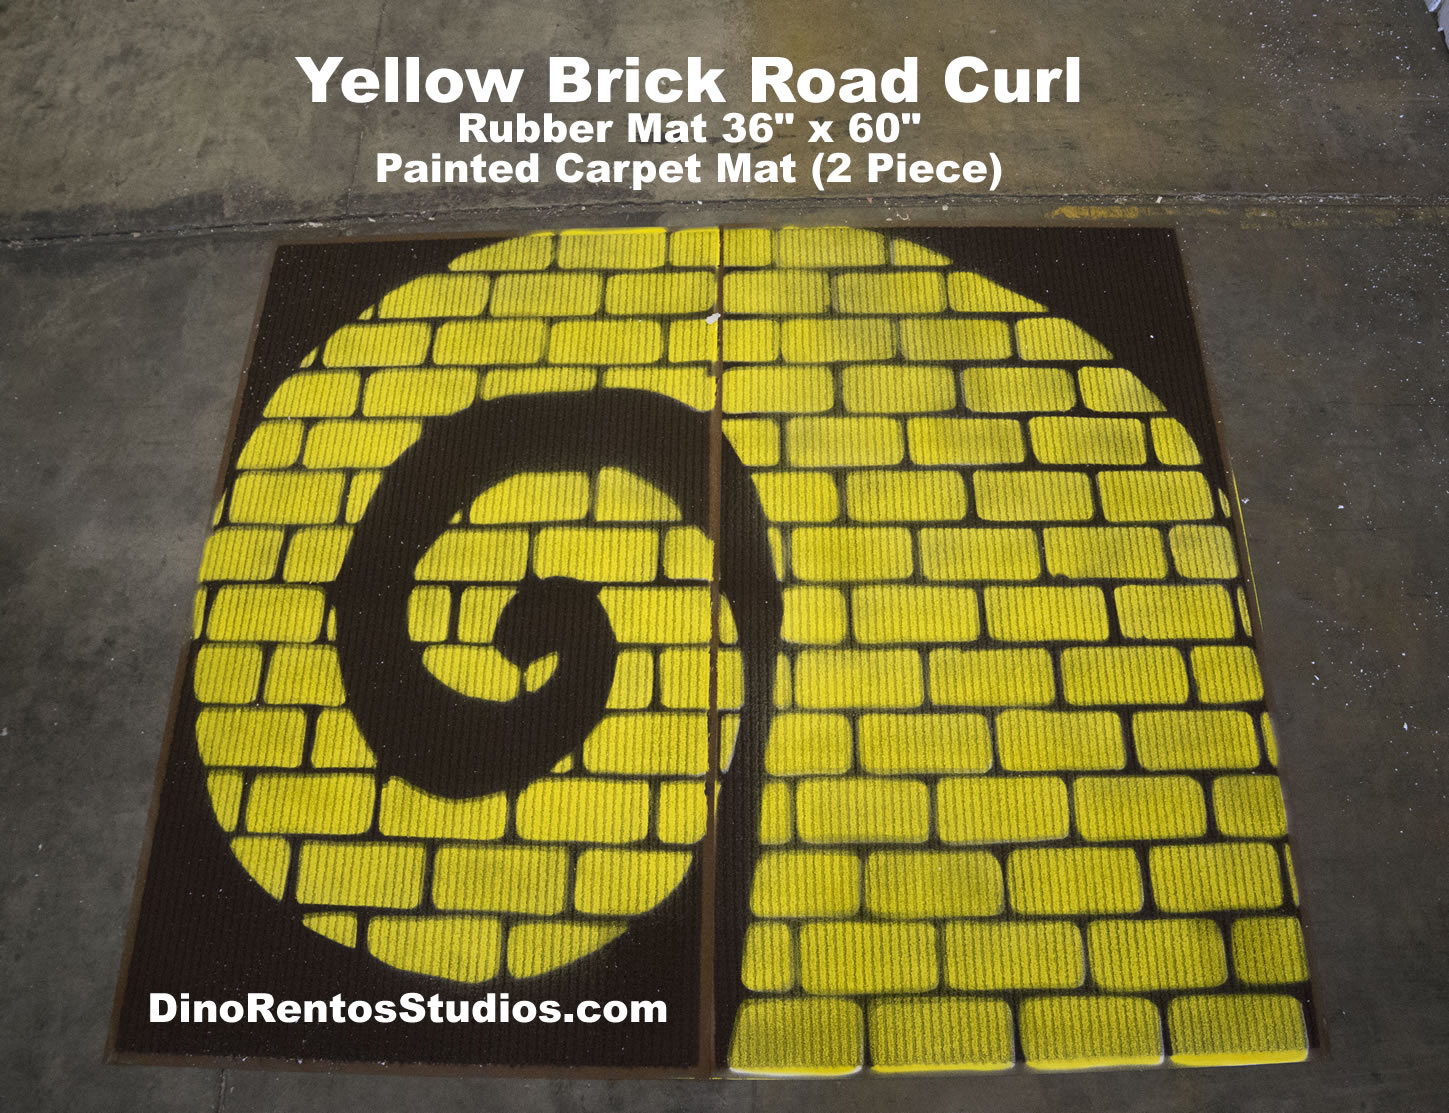 Gangster disciples yellow brick road term paper help gangster disciples yellow brick road malvernweather Gallery